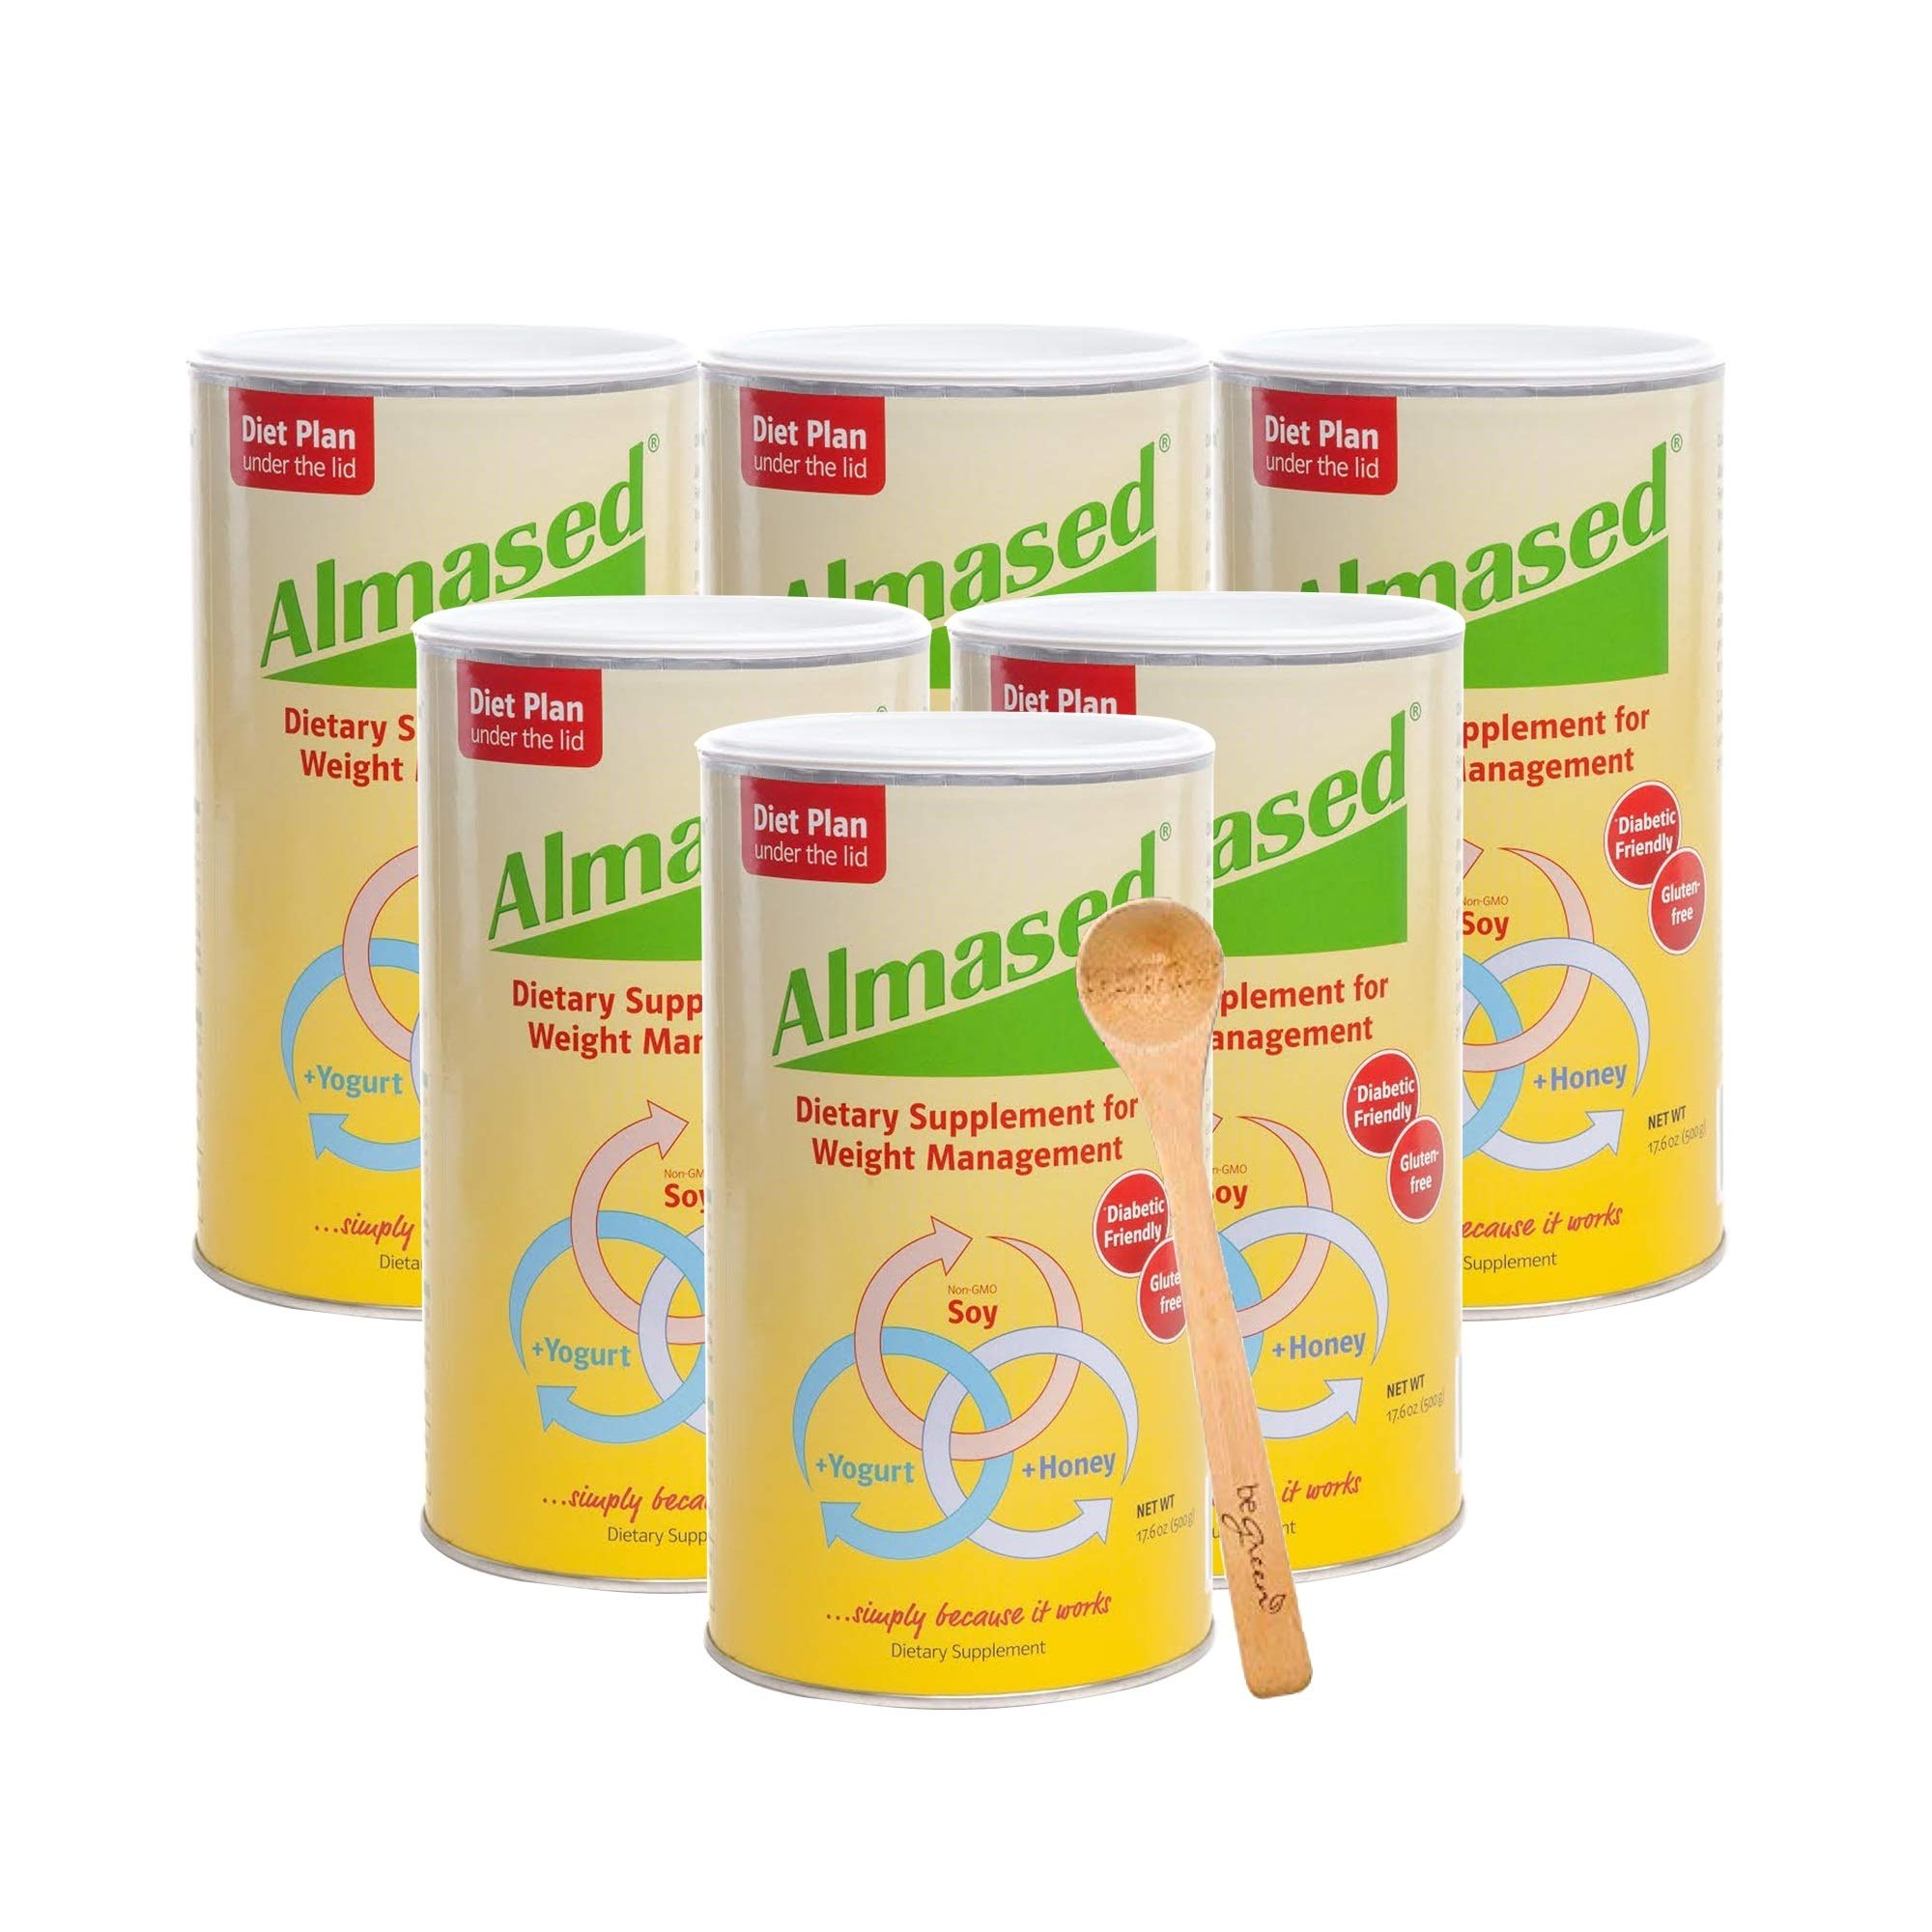 Almased Meal Replacement Shake (6 Pack) with Bonus Bamboo Spoon - 17.6 oz Powder - High Protein Weight Loss Drink, Fat Metabolism Booster - Vegetarian, Gluten Free - 60 Total Servings by Almased (Image #1)